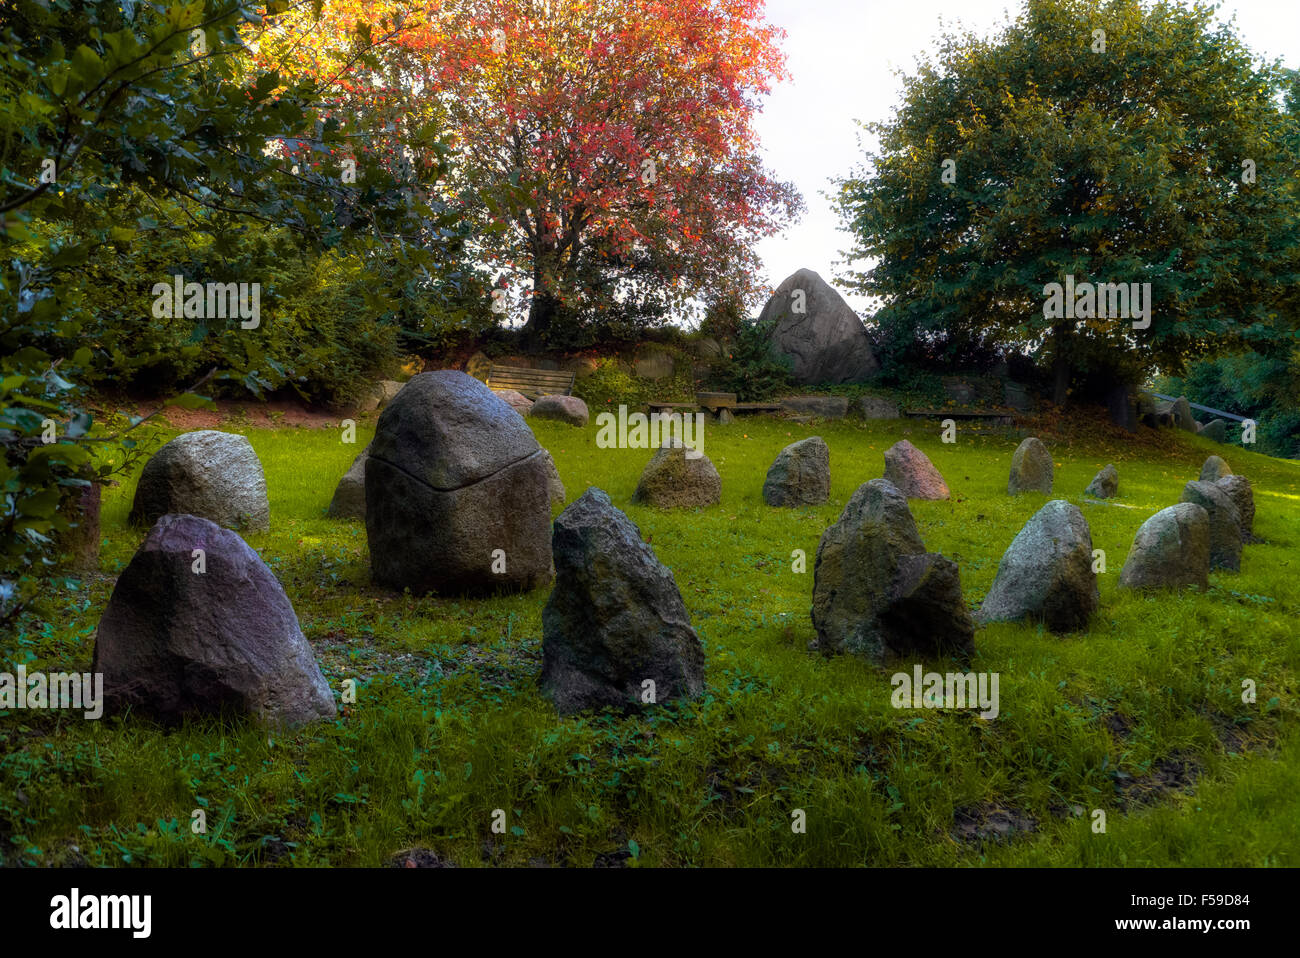 Thing meeting-place, Stoltebuell, Schleswig-Holstein, Germany - Stock Image